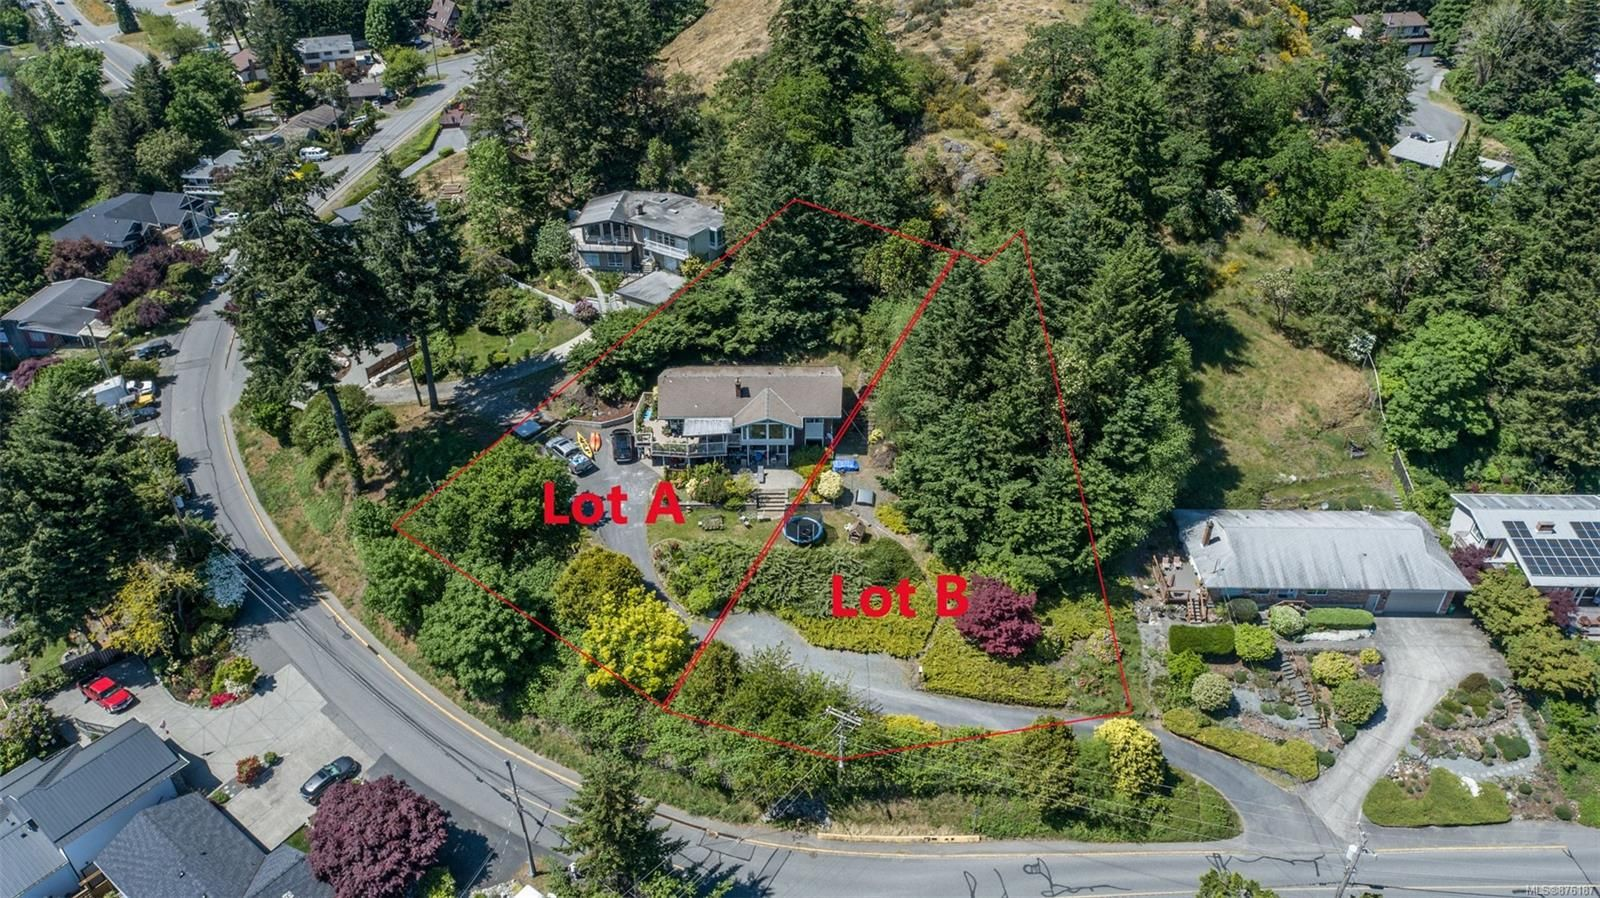 Main Photo: 1431 Sherwood Dr in : Na Departure Bay Other for sale (Nanaimo)  : MLS®# 876187